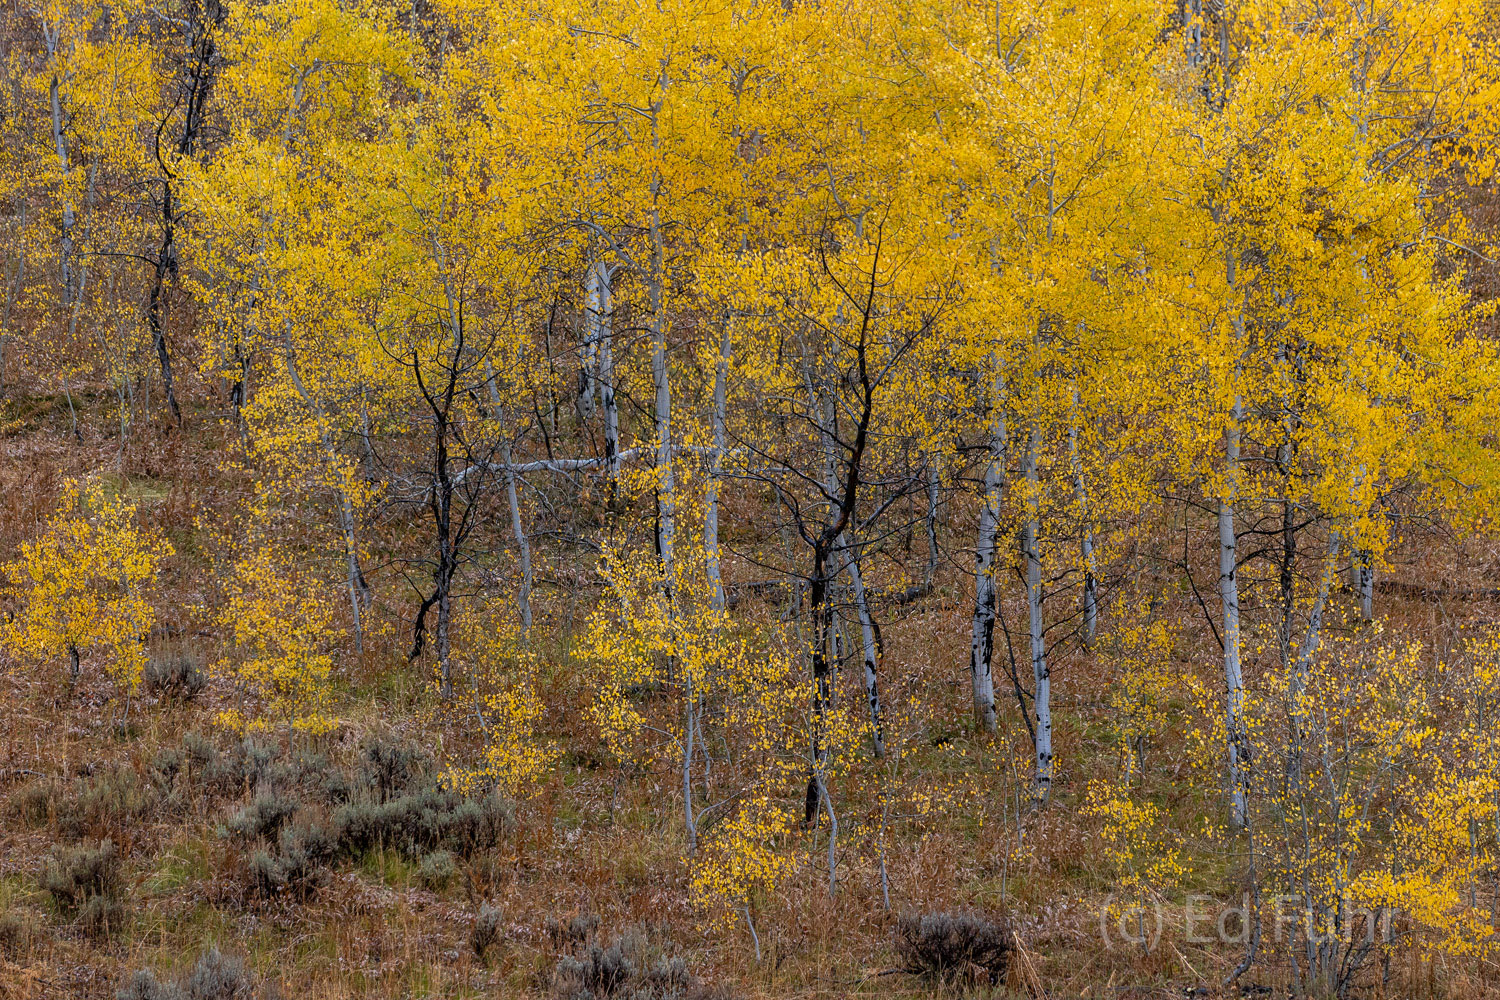 On this rainy autumn day, a grove of aspen, stands saturated and in peak color.